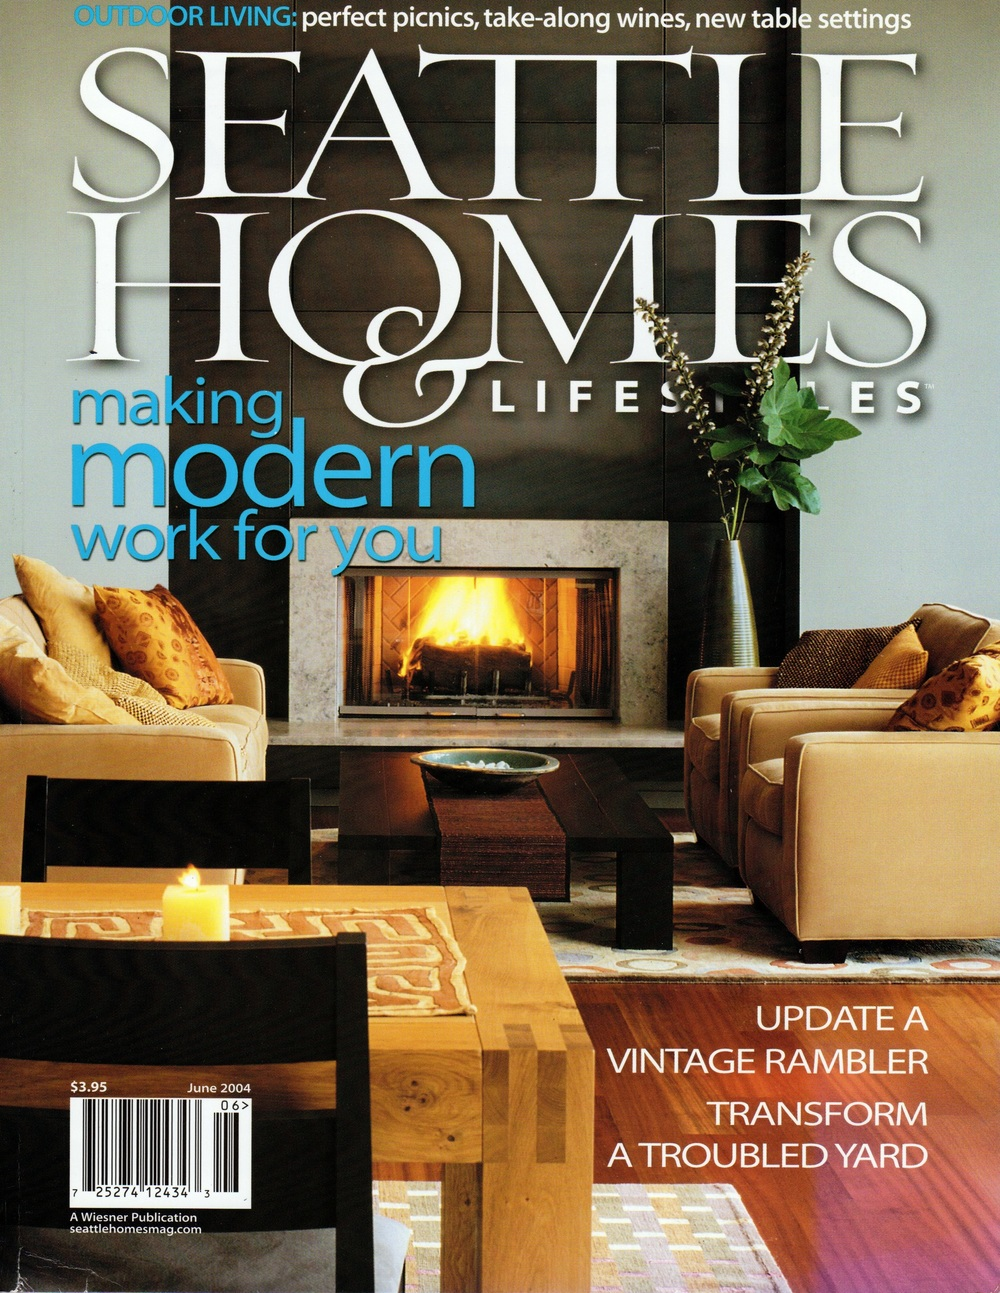 SEATTLE HOMES & LIFESTYLES    June 2004   Beach House